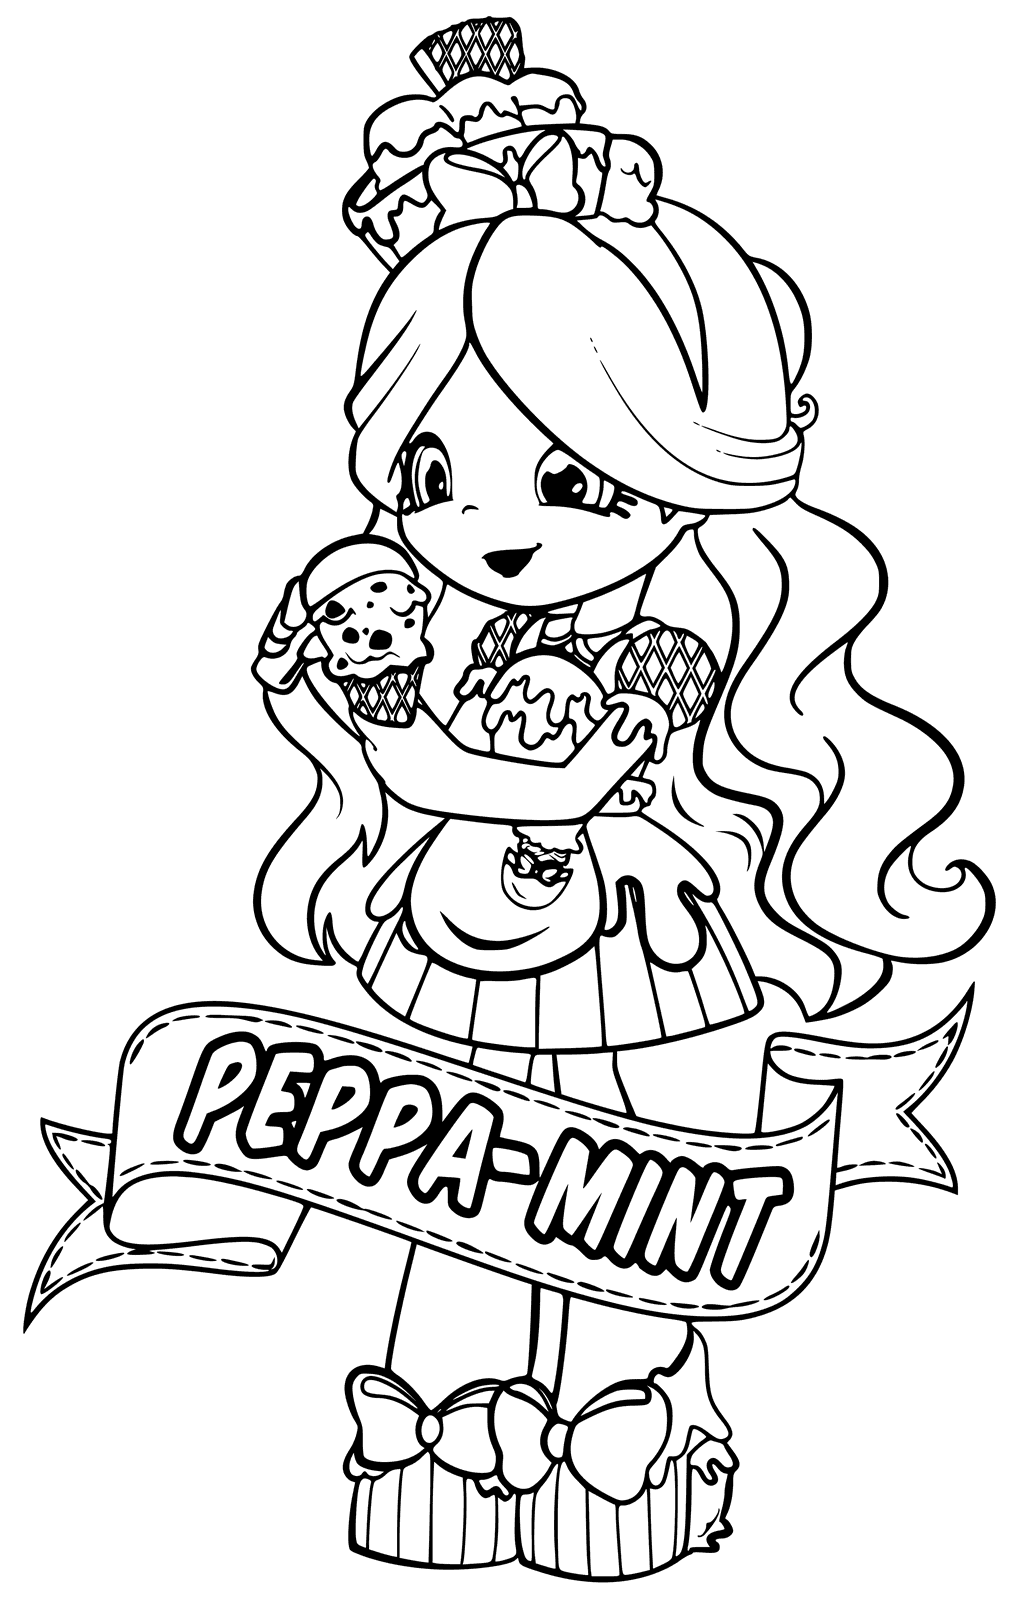 Peppa-Mint Shoppies Coloring Pages